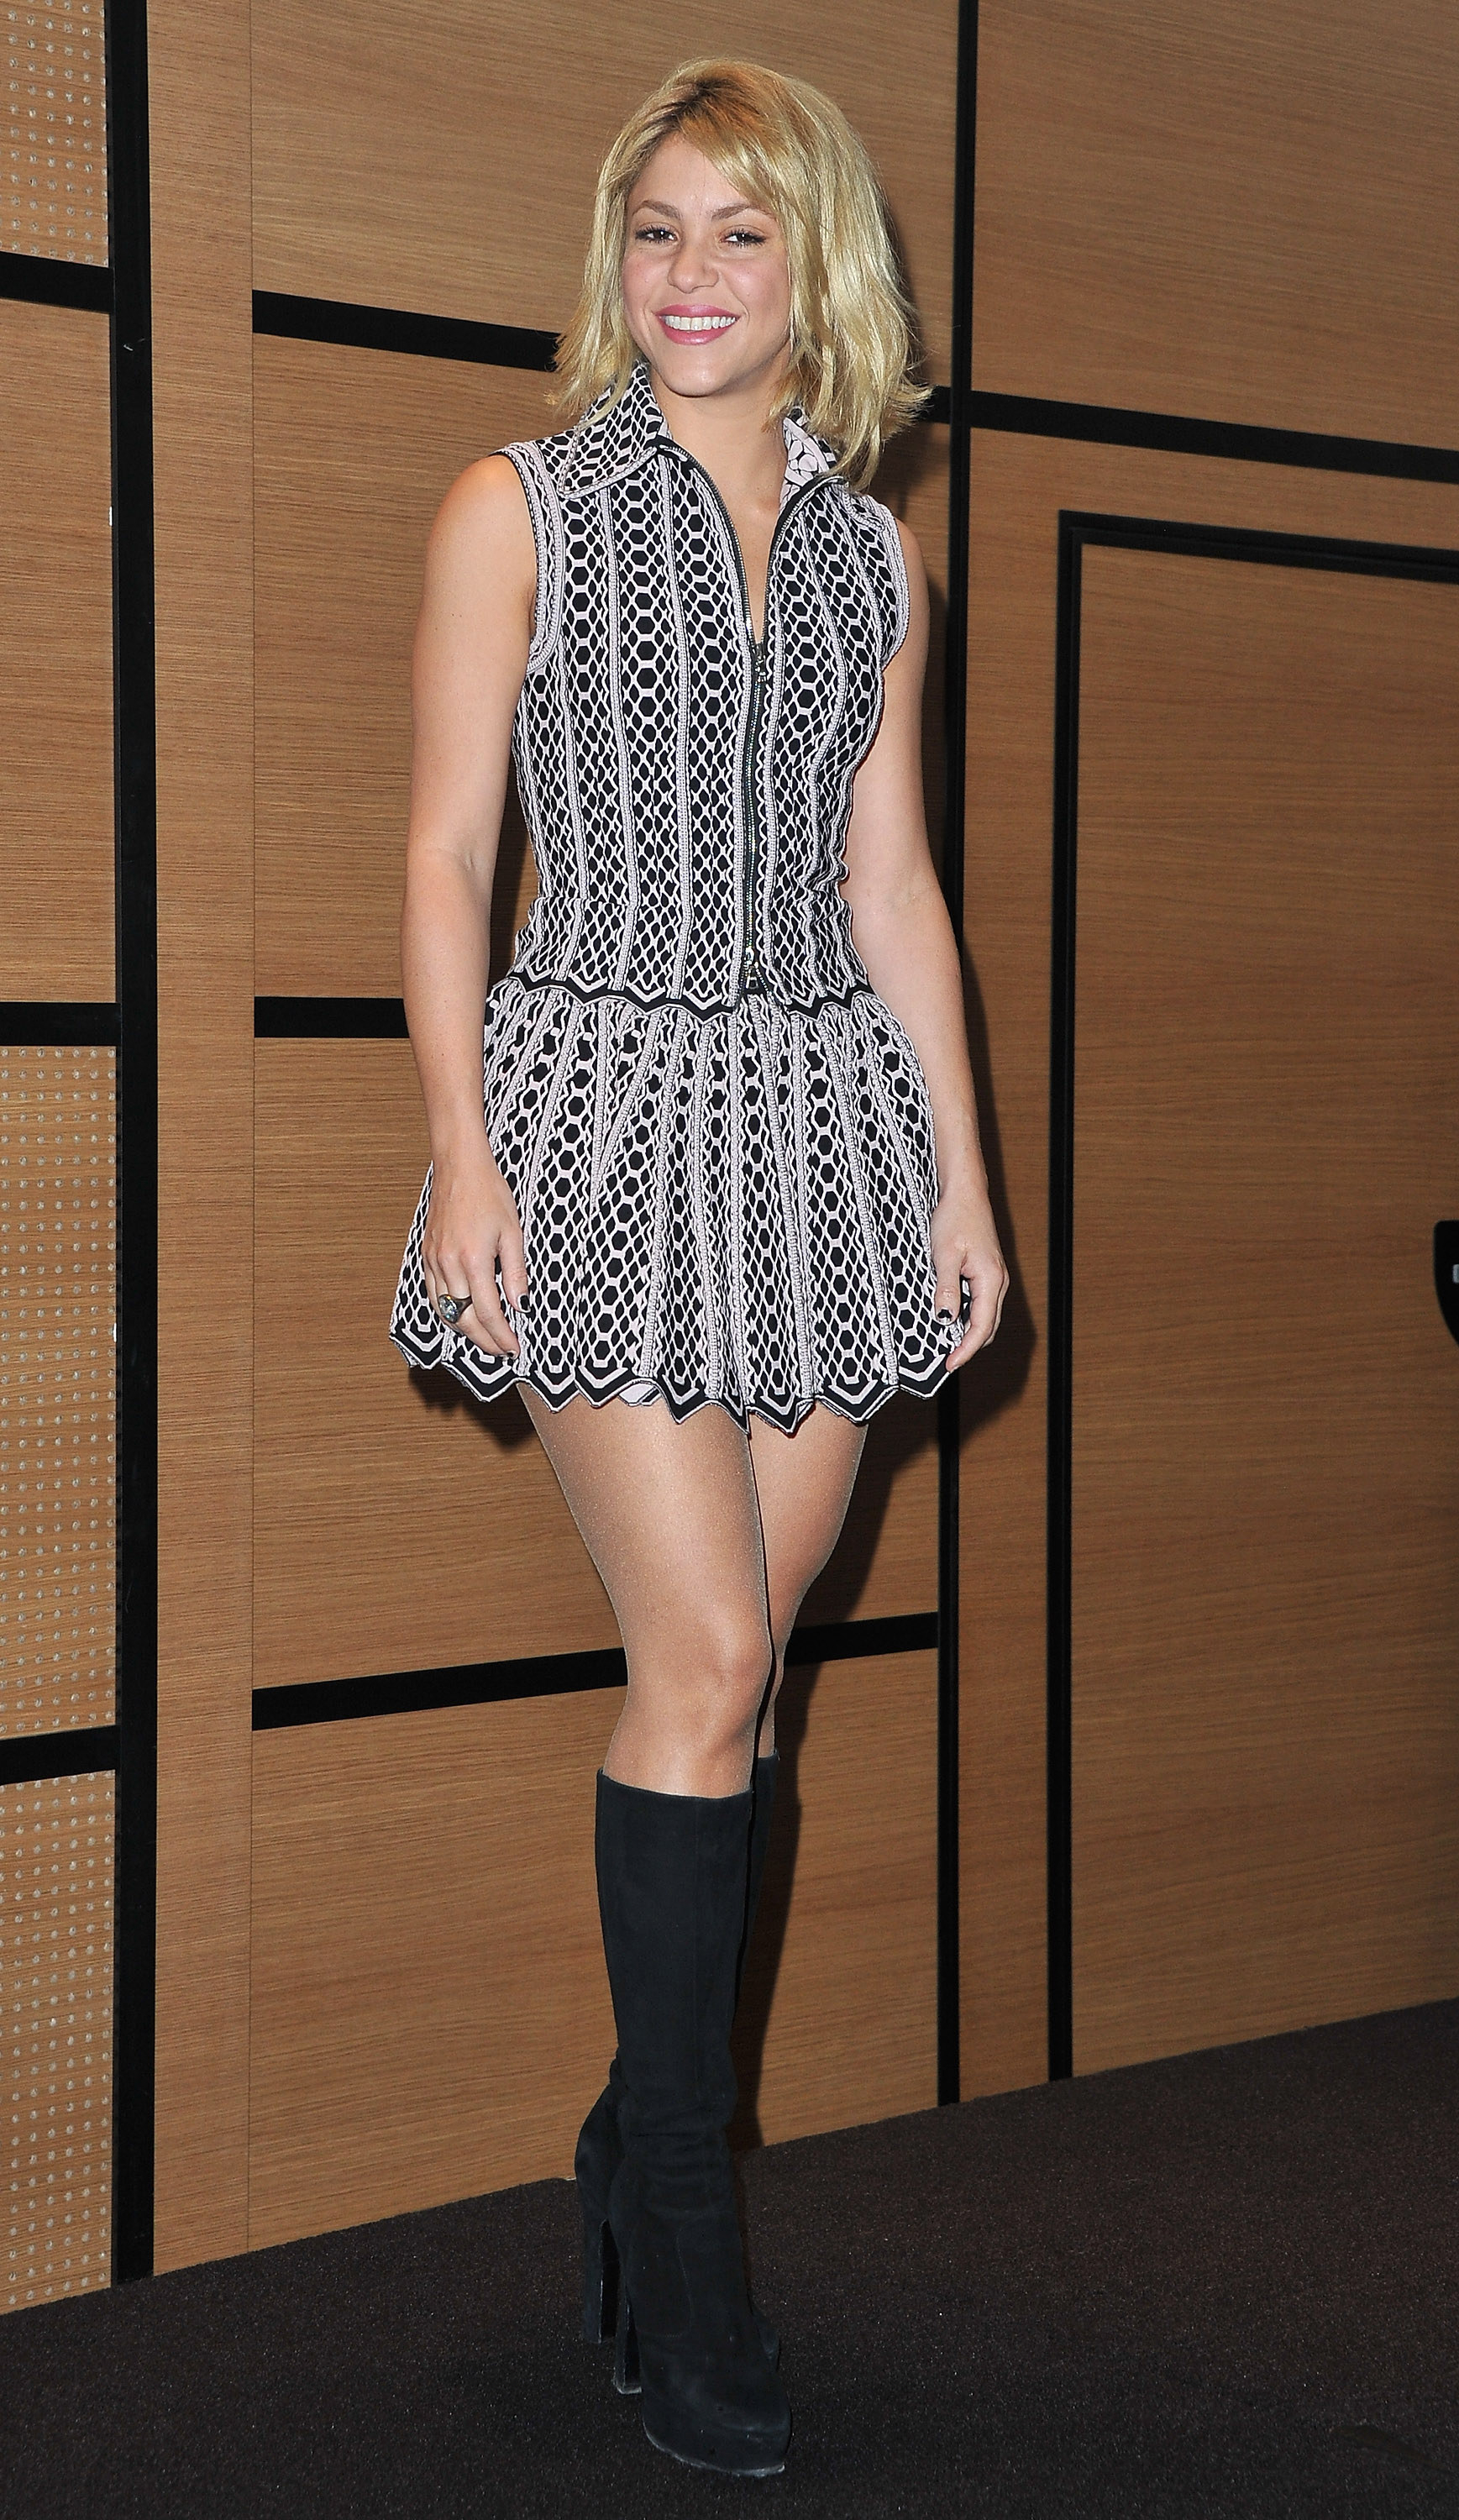 Shakira shows off the rest of the outfit, a sleeveless black and white form-fitted mini dress that flares at the bottom